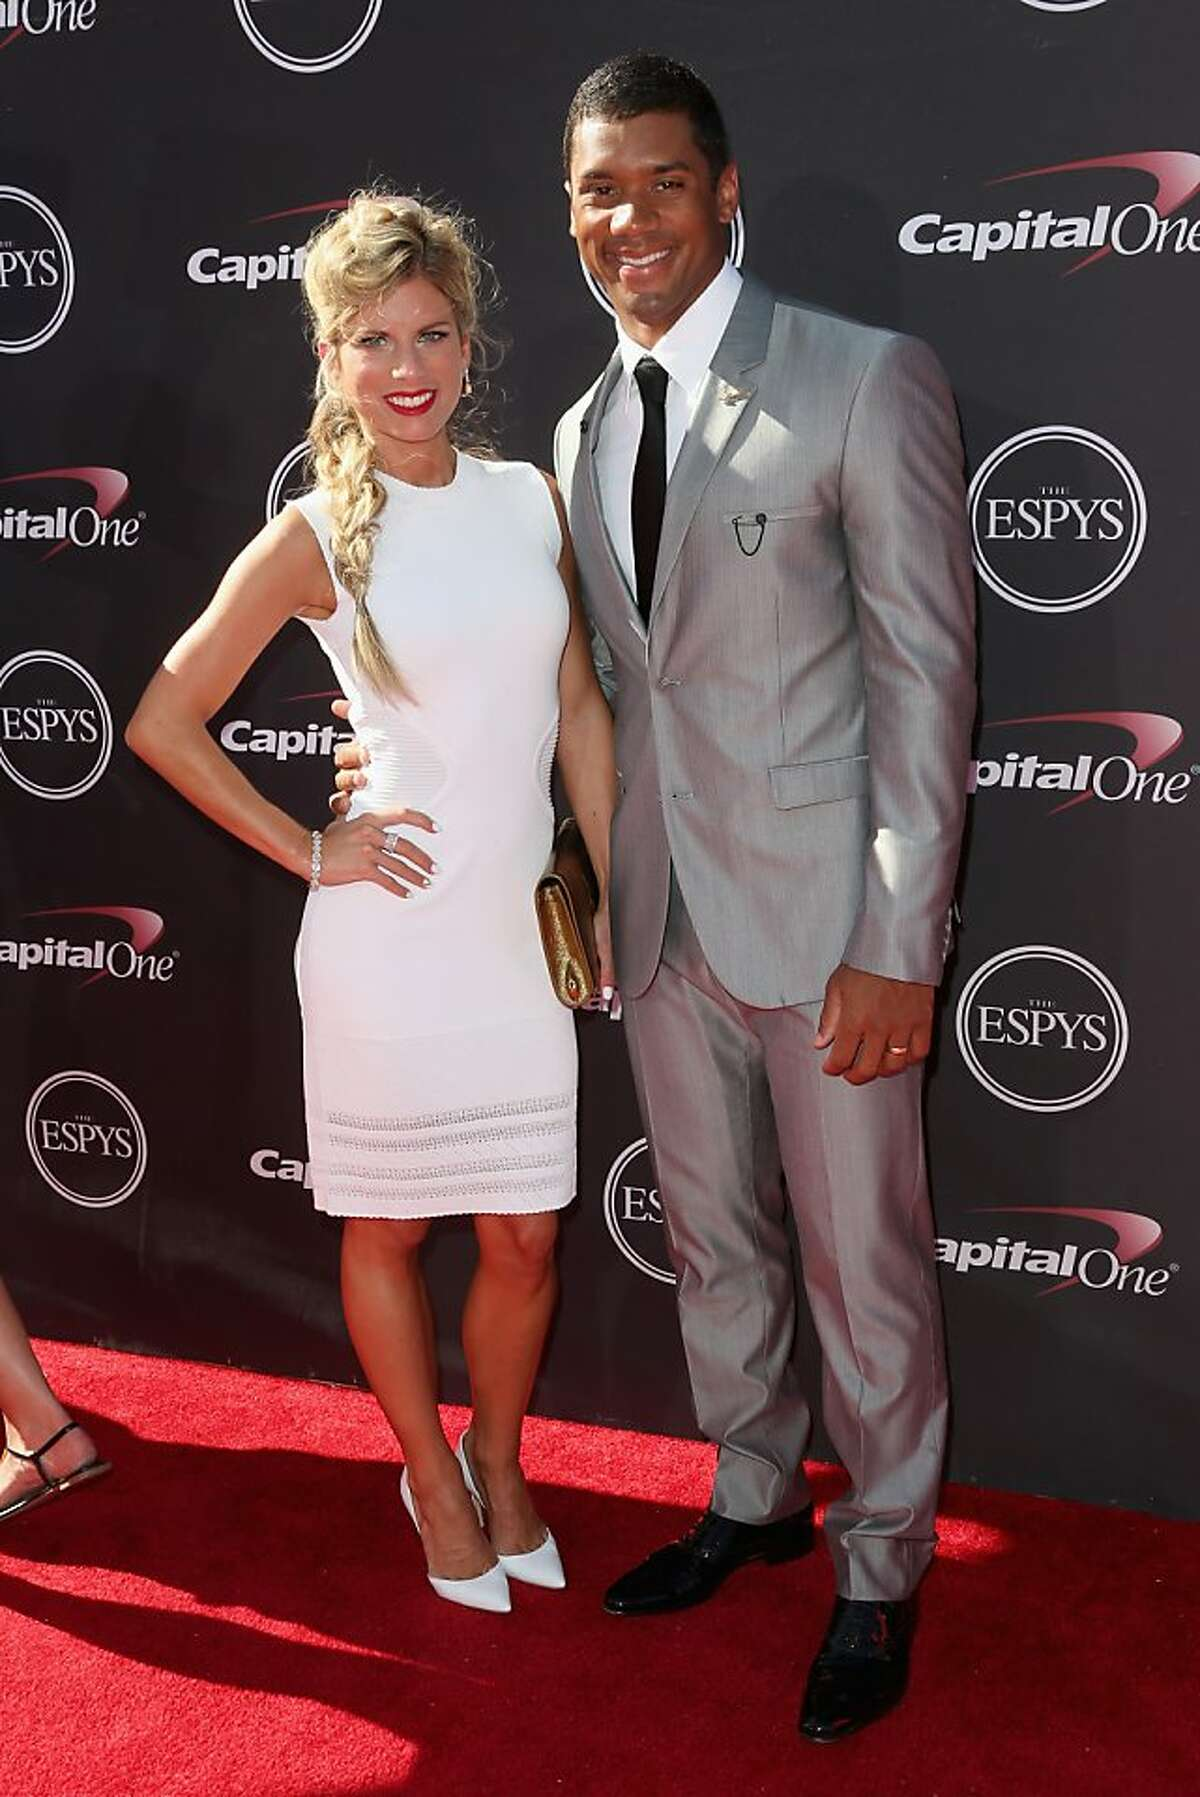 Seahawks quarterback Russell Wilson and Ashton Meem attend The 2013 ESPY Awards Nokia Theatre L.A. Live on Wednesday, July 17, 2013 in Los Angeles.